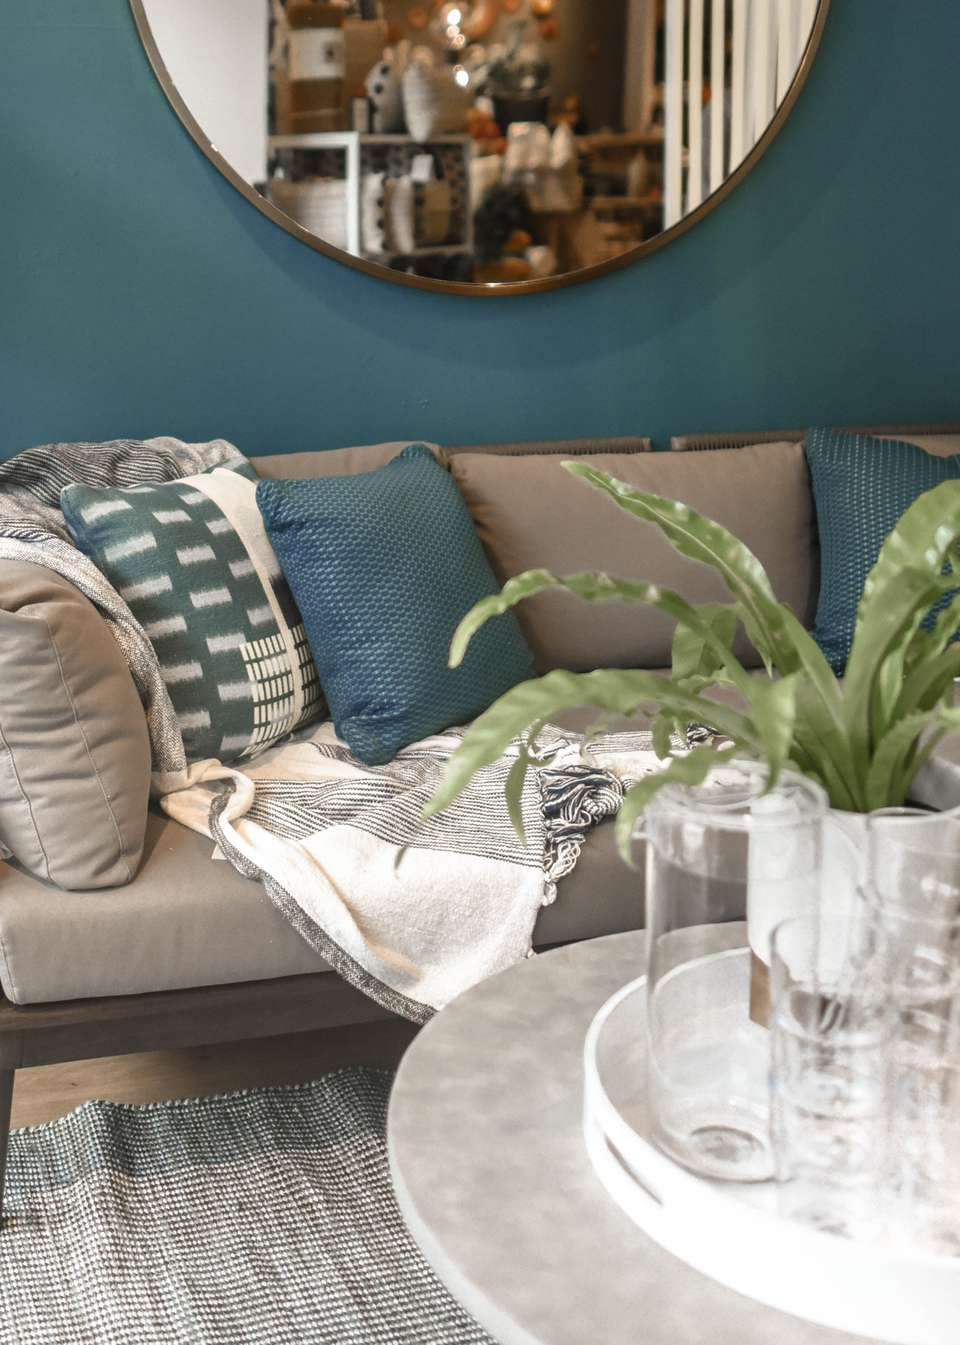 living room with blue and gray tones and a plant